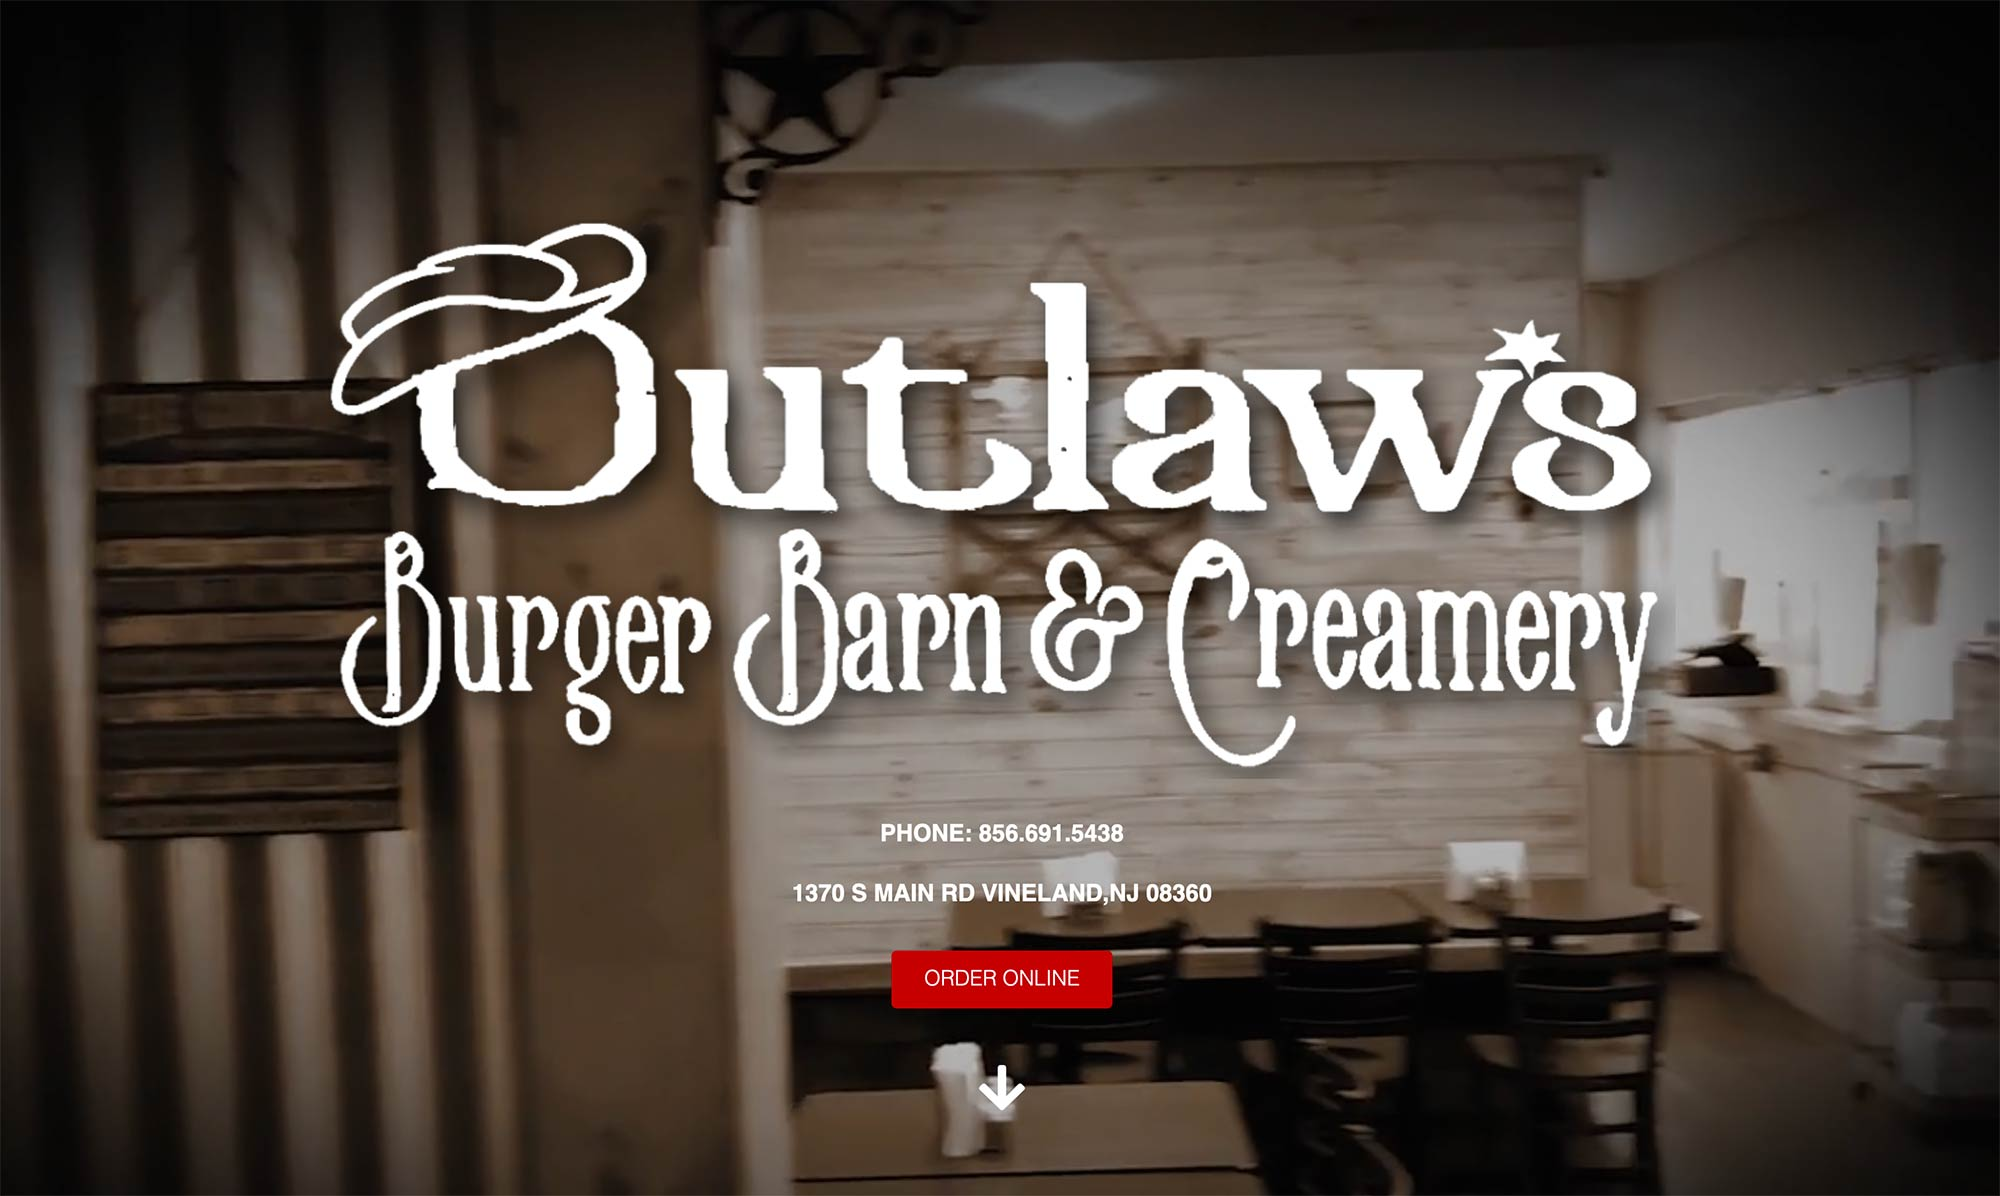 Outlaws Burger Barn